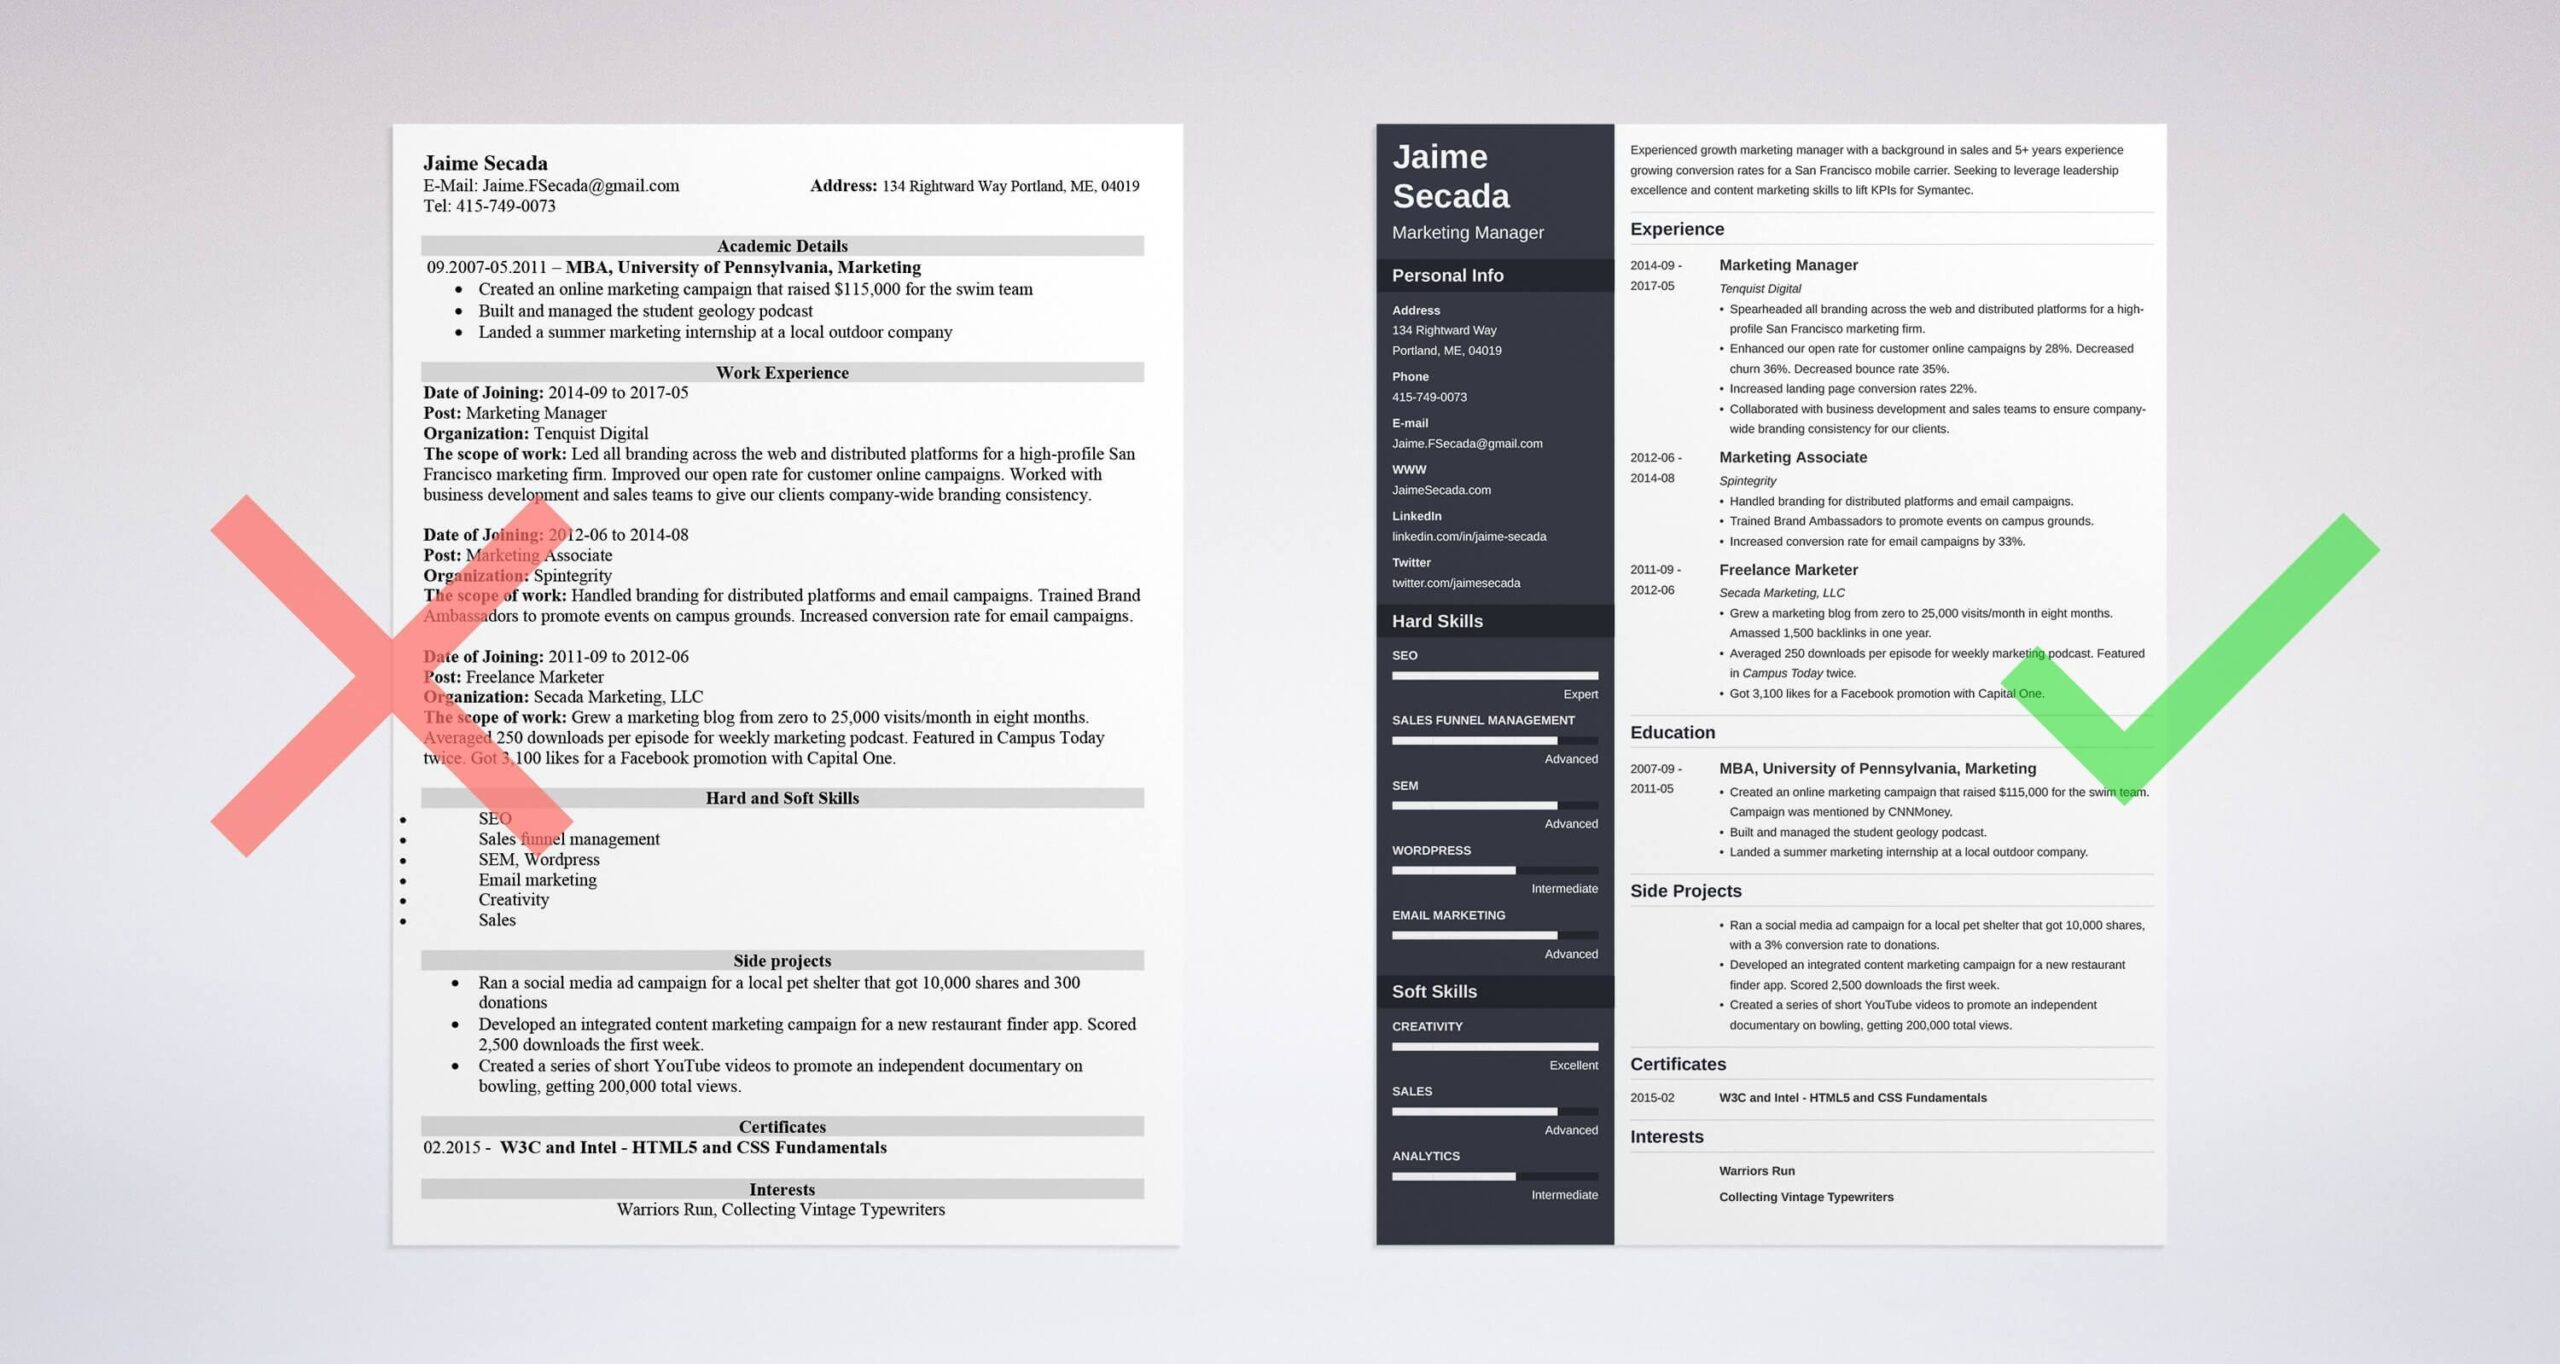 marketing resume examples best templates expert tips writer samples profile for students Resume Marketing Resume Writer